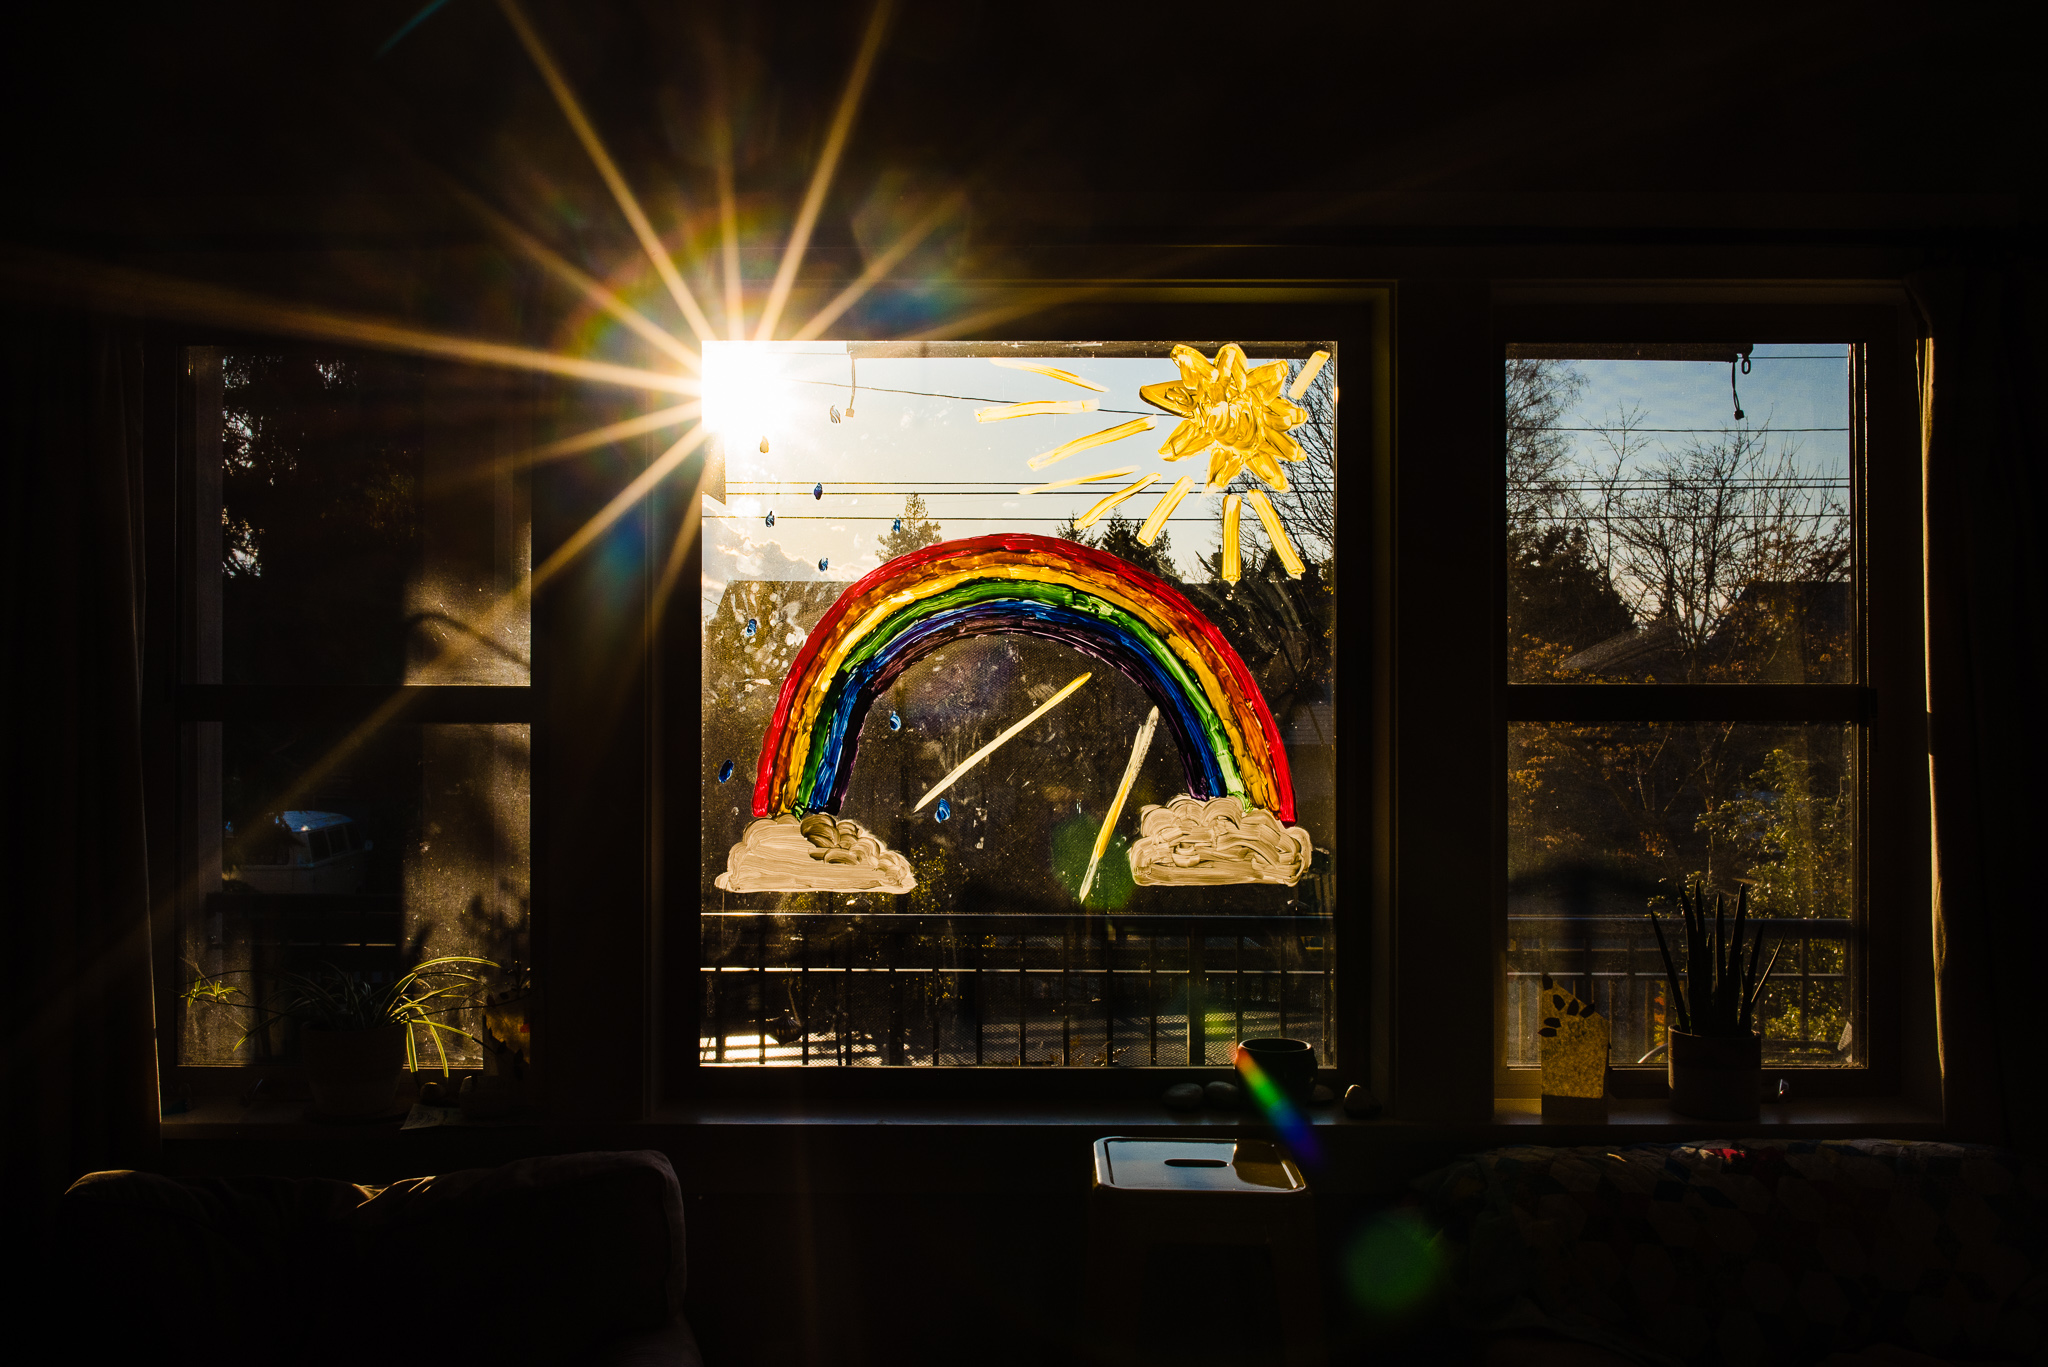 rainbow painted on window inside home